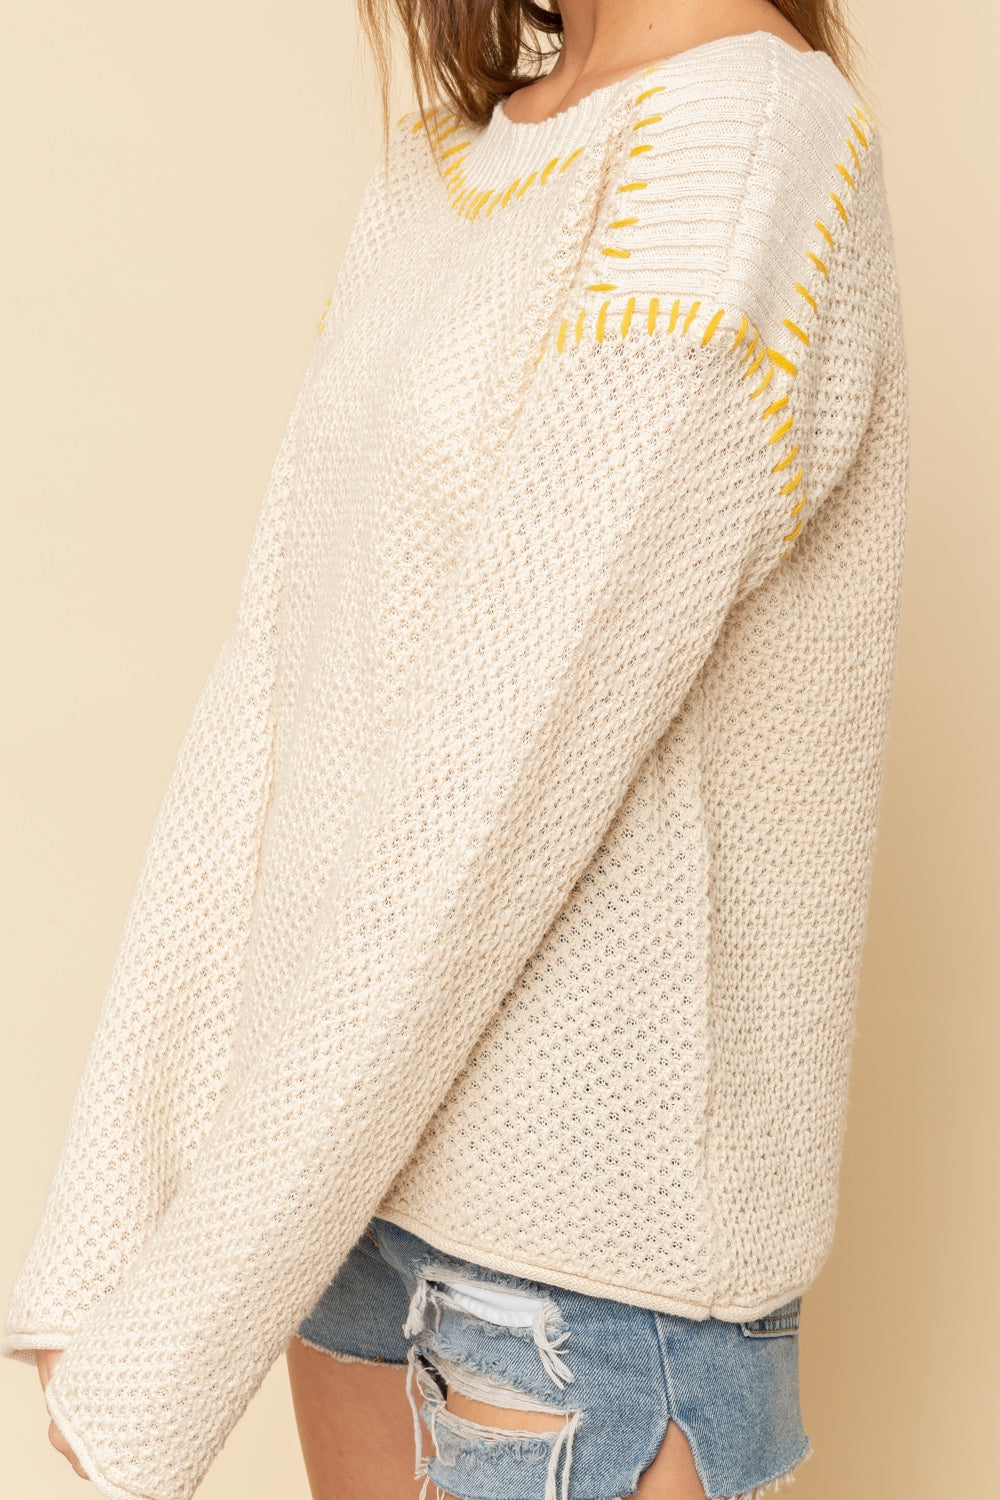 Ivory Sweater with Mustard Stitching